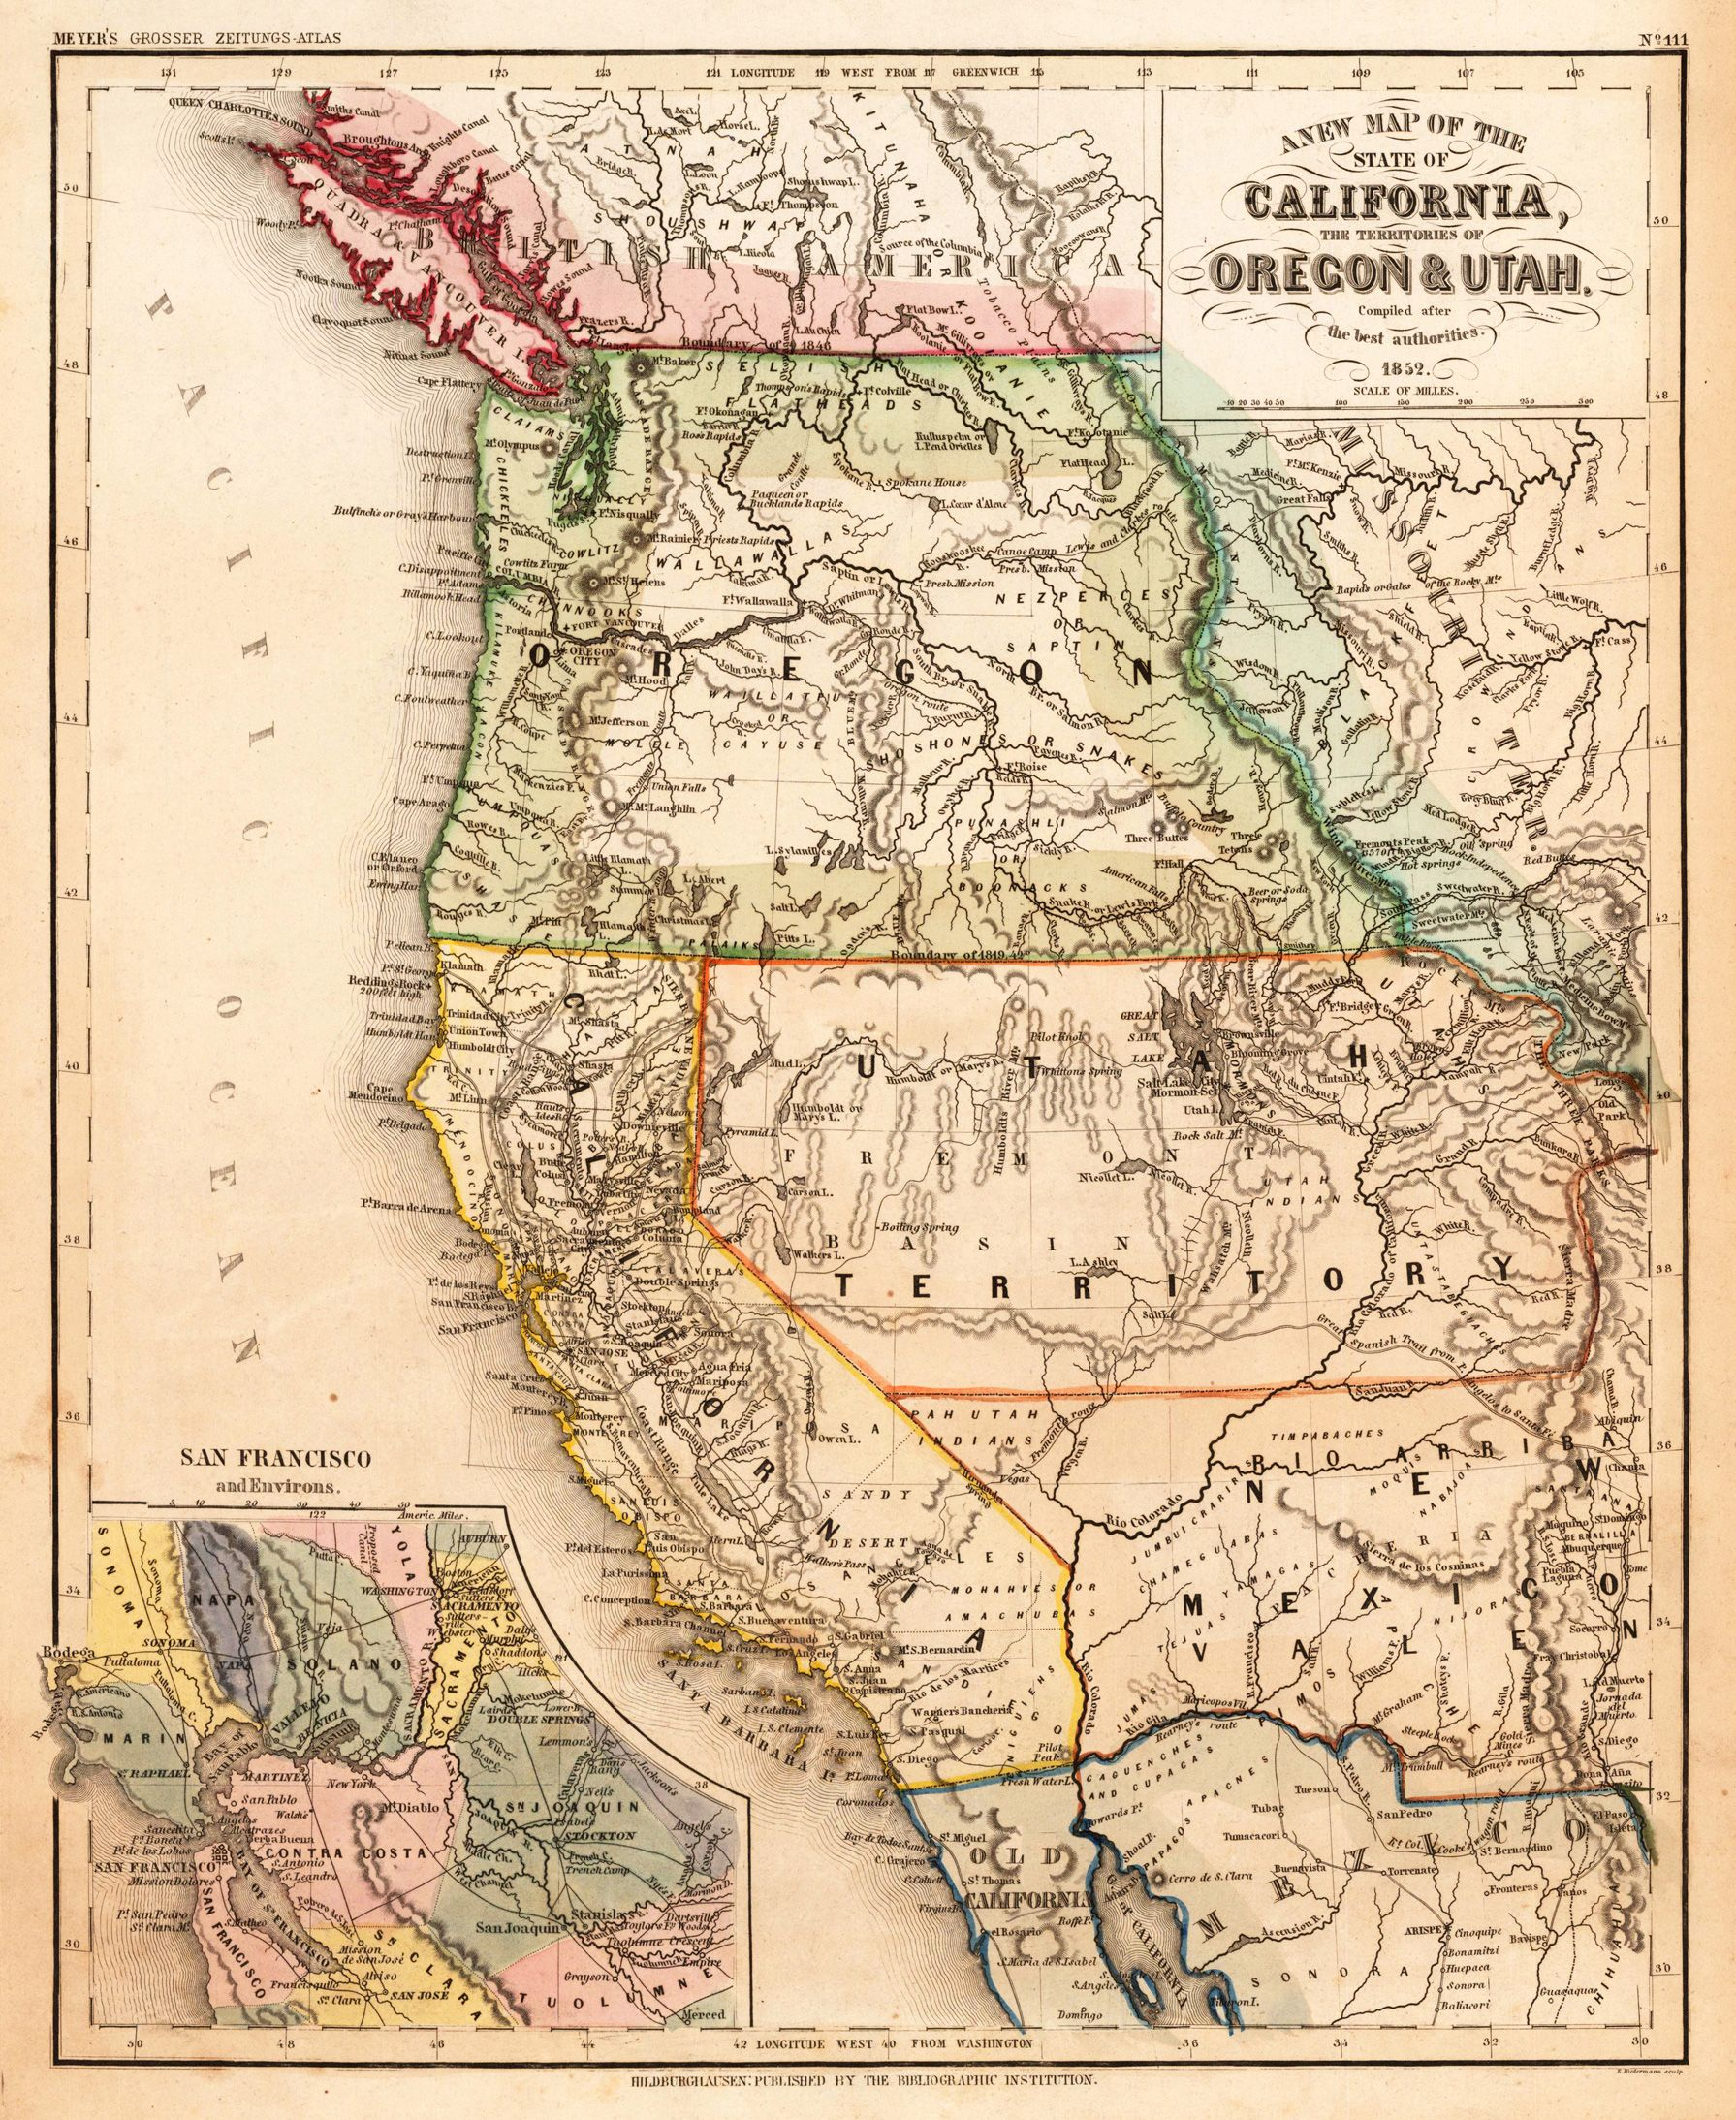 California, Oregon & Utah 1852